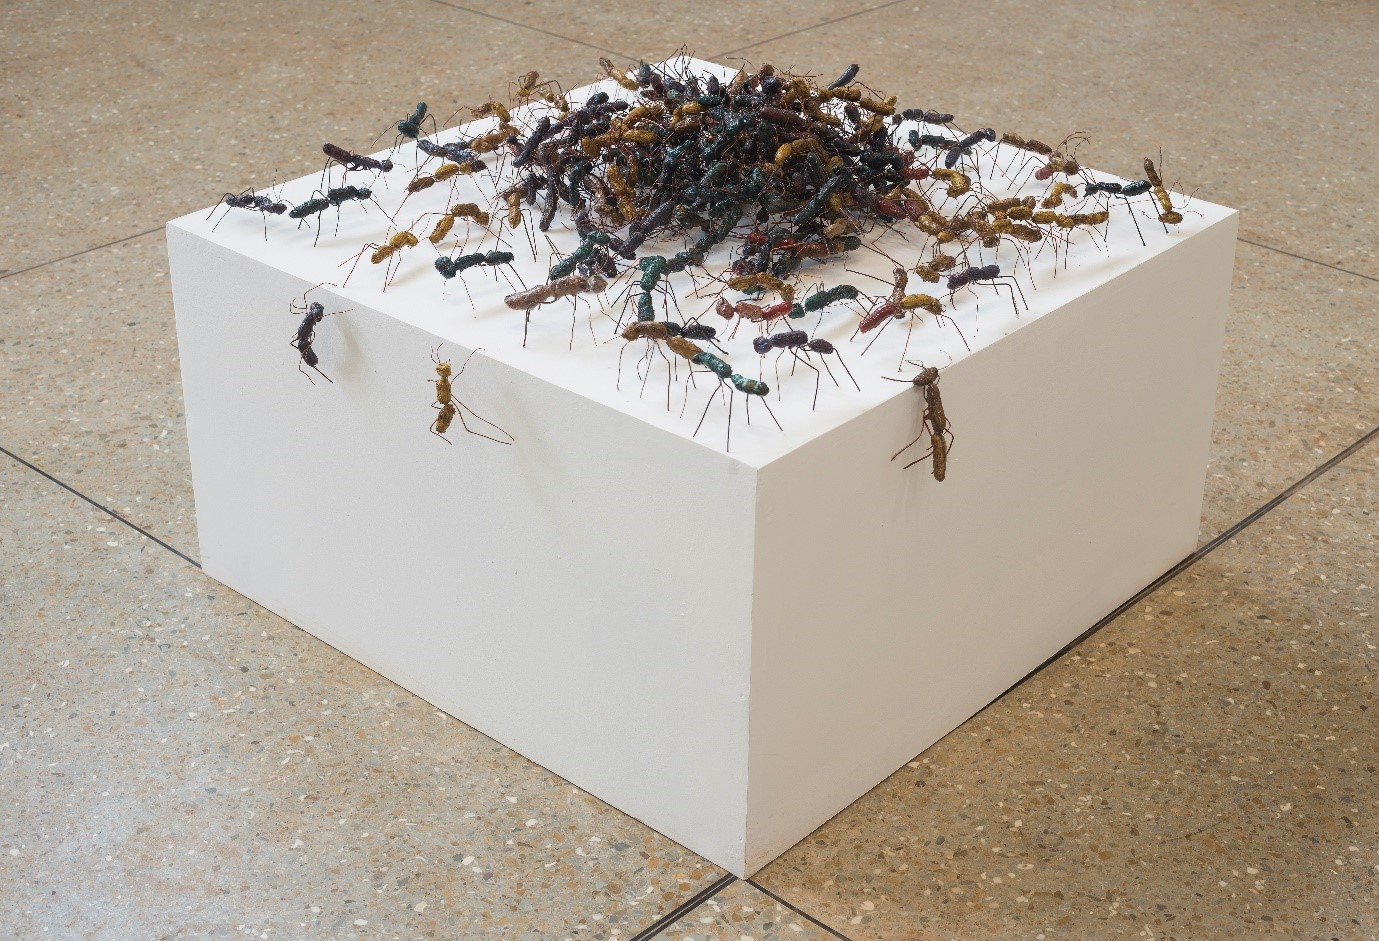 Kofi Dawson, Ants [3rd edition], (2018), groundnut shells, copper wire, dye, and sawdust. Courtesy Nii Odzenma for SCCA Tamale